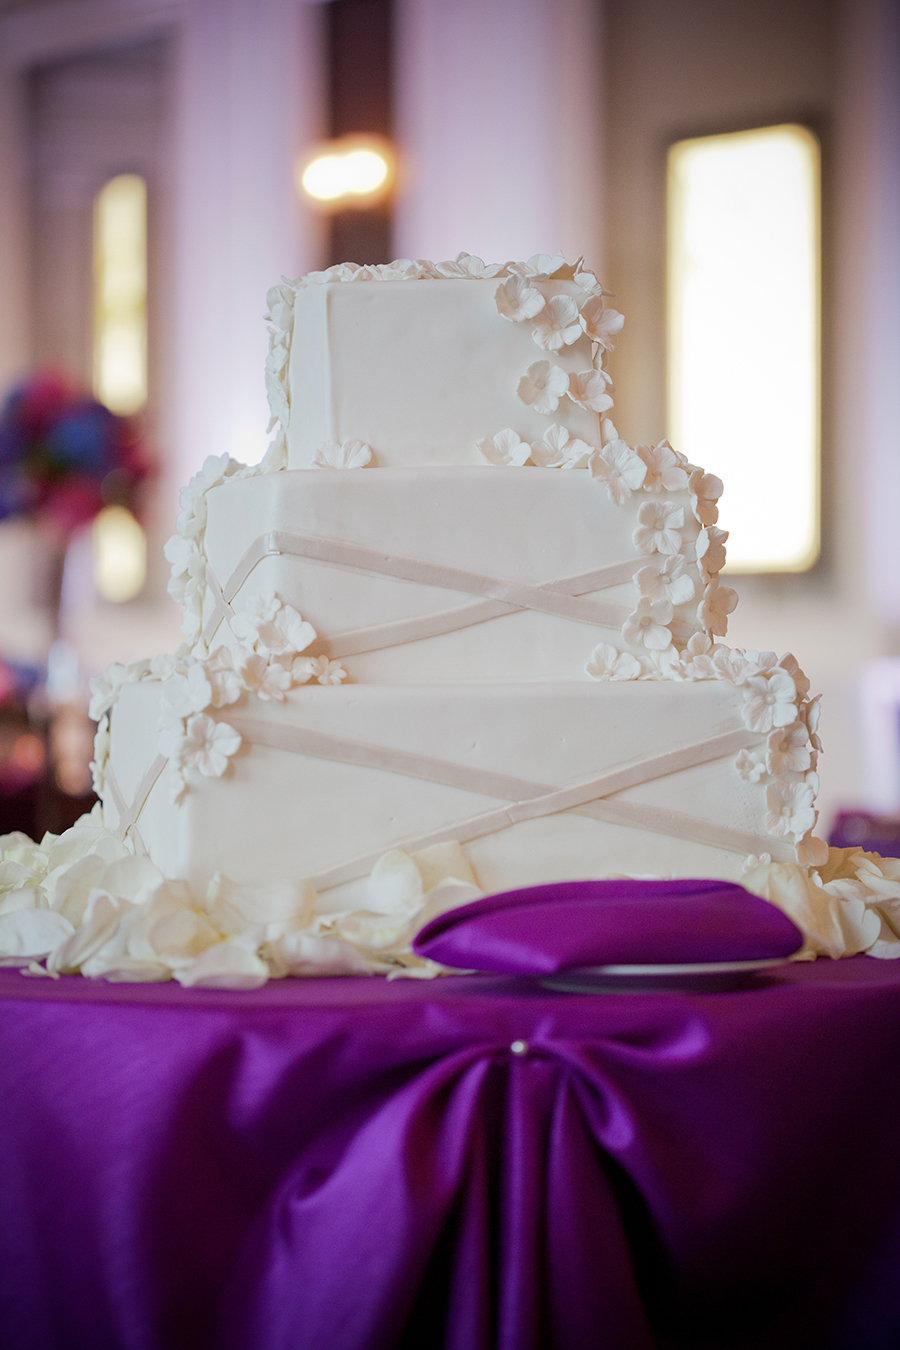 Cakes, Real Weddings, Wedding Style, purple, Floral Wedding Cakes, Wedding Cakes, Classic Real Weddings, Fall Real Weddings, Midwest Real Weddings, Modern wedding cake, Midwest Weddings, City Real Wedding, contemporary cake, Autumn Real Weddings, Chicago Real Weddings, Chicago Weddings, City Wedding